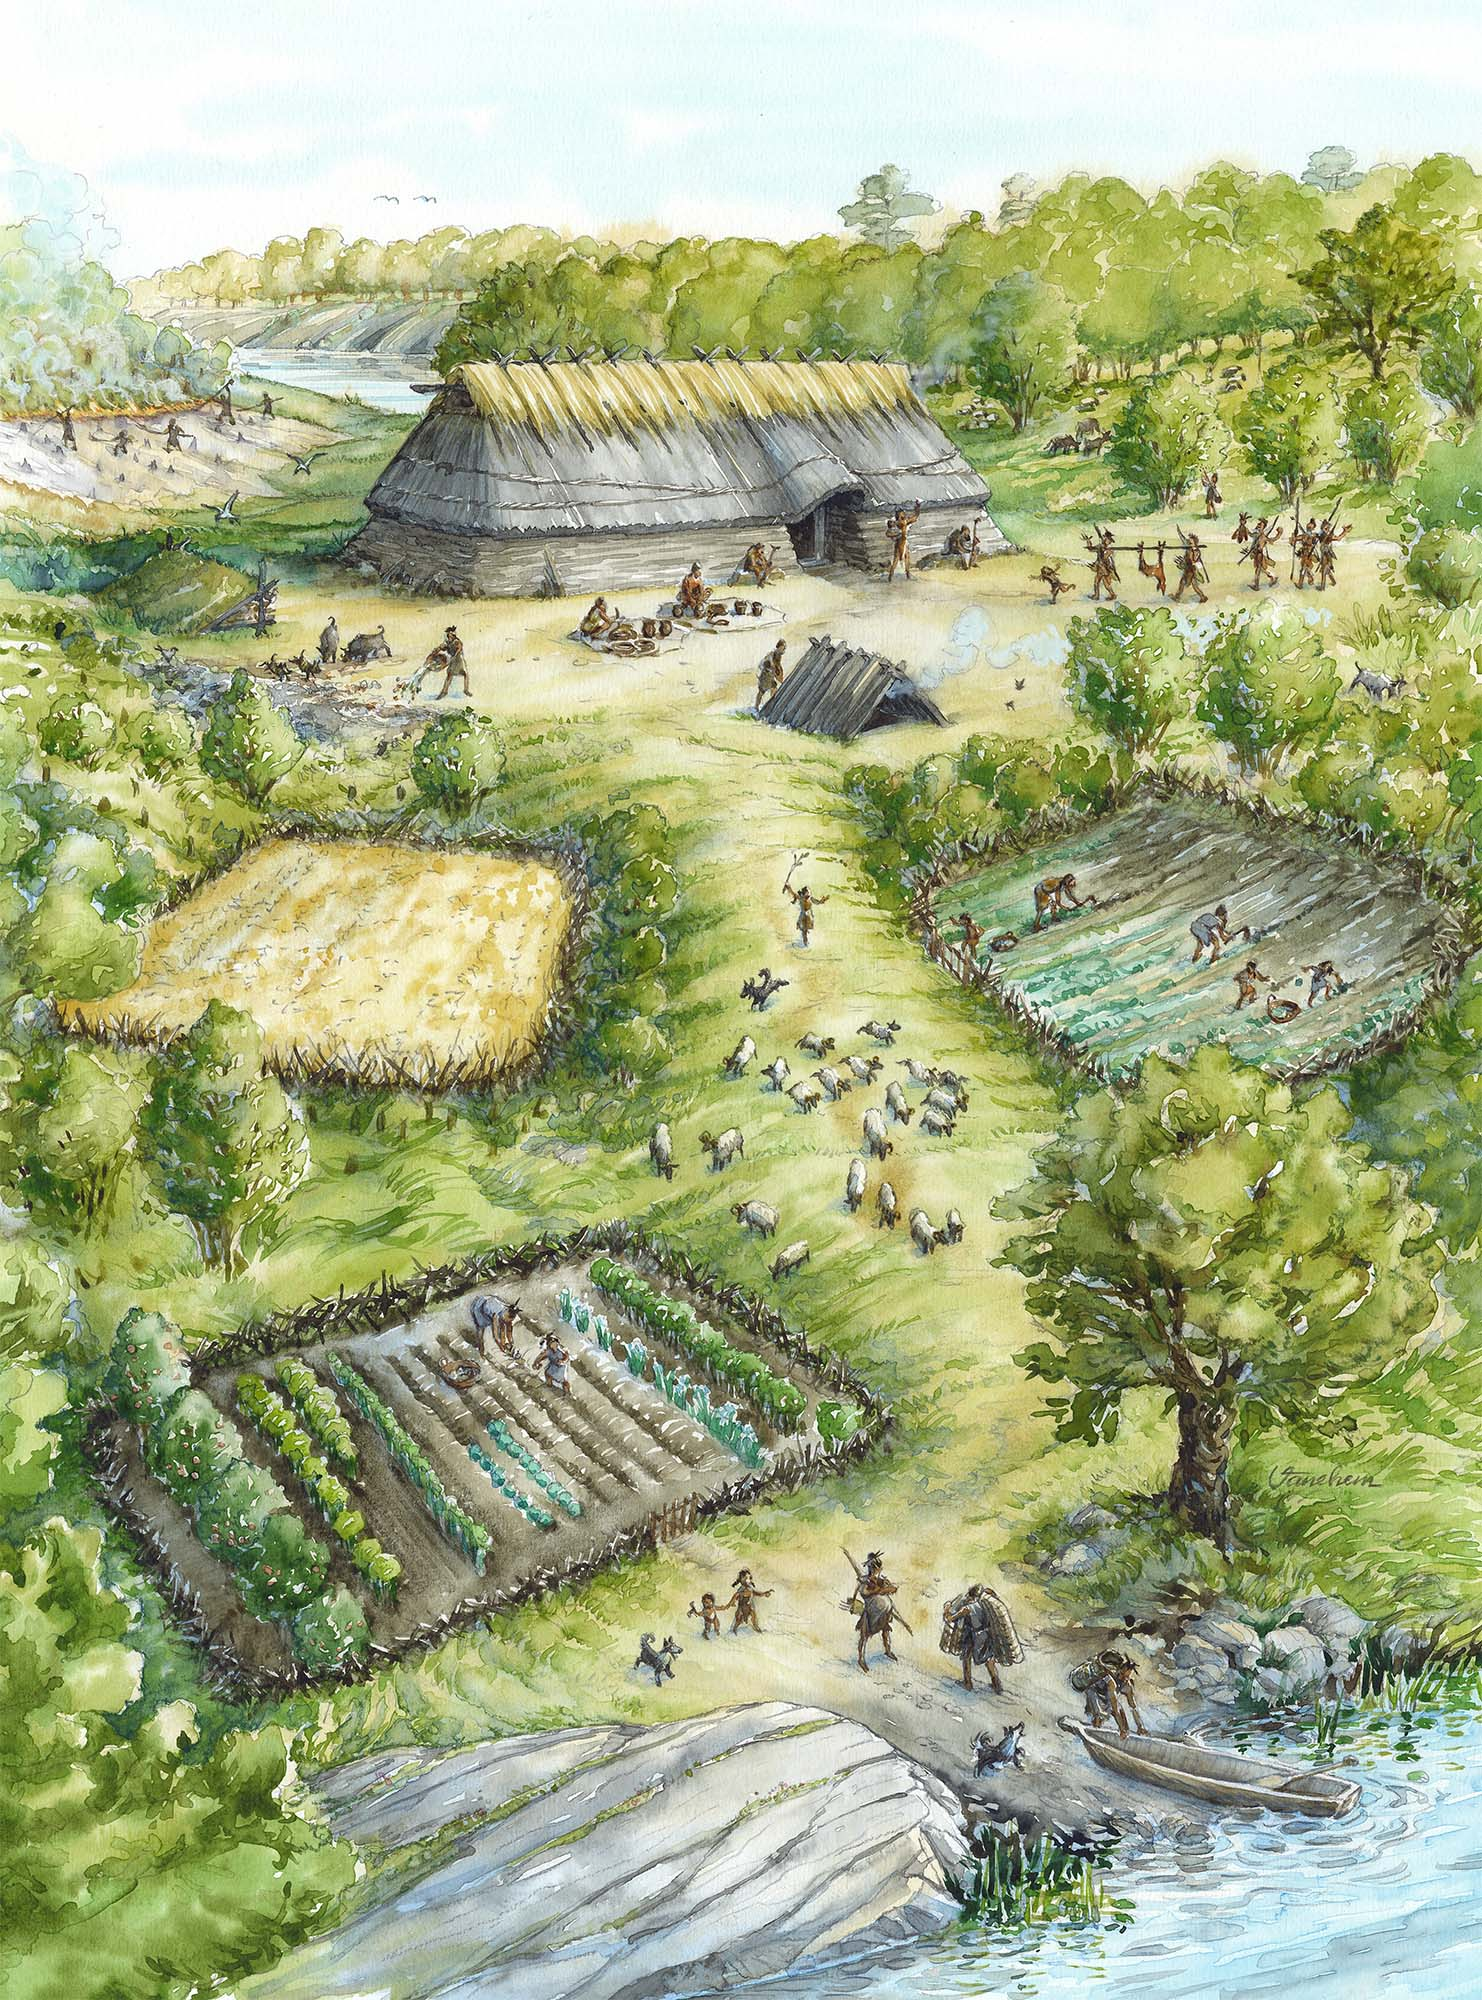 Neolithic settlement on the south coast of Norway (Client: Aust Agder Museum og Arkiv in Arendal, Norway).